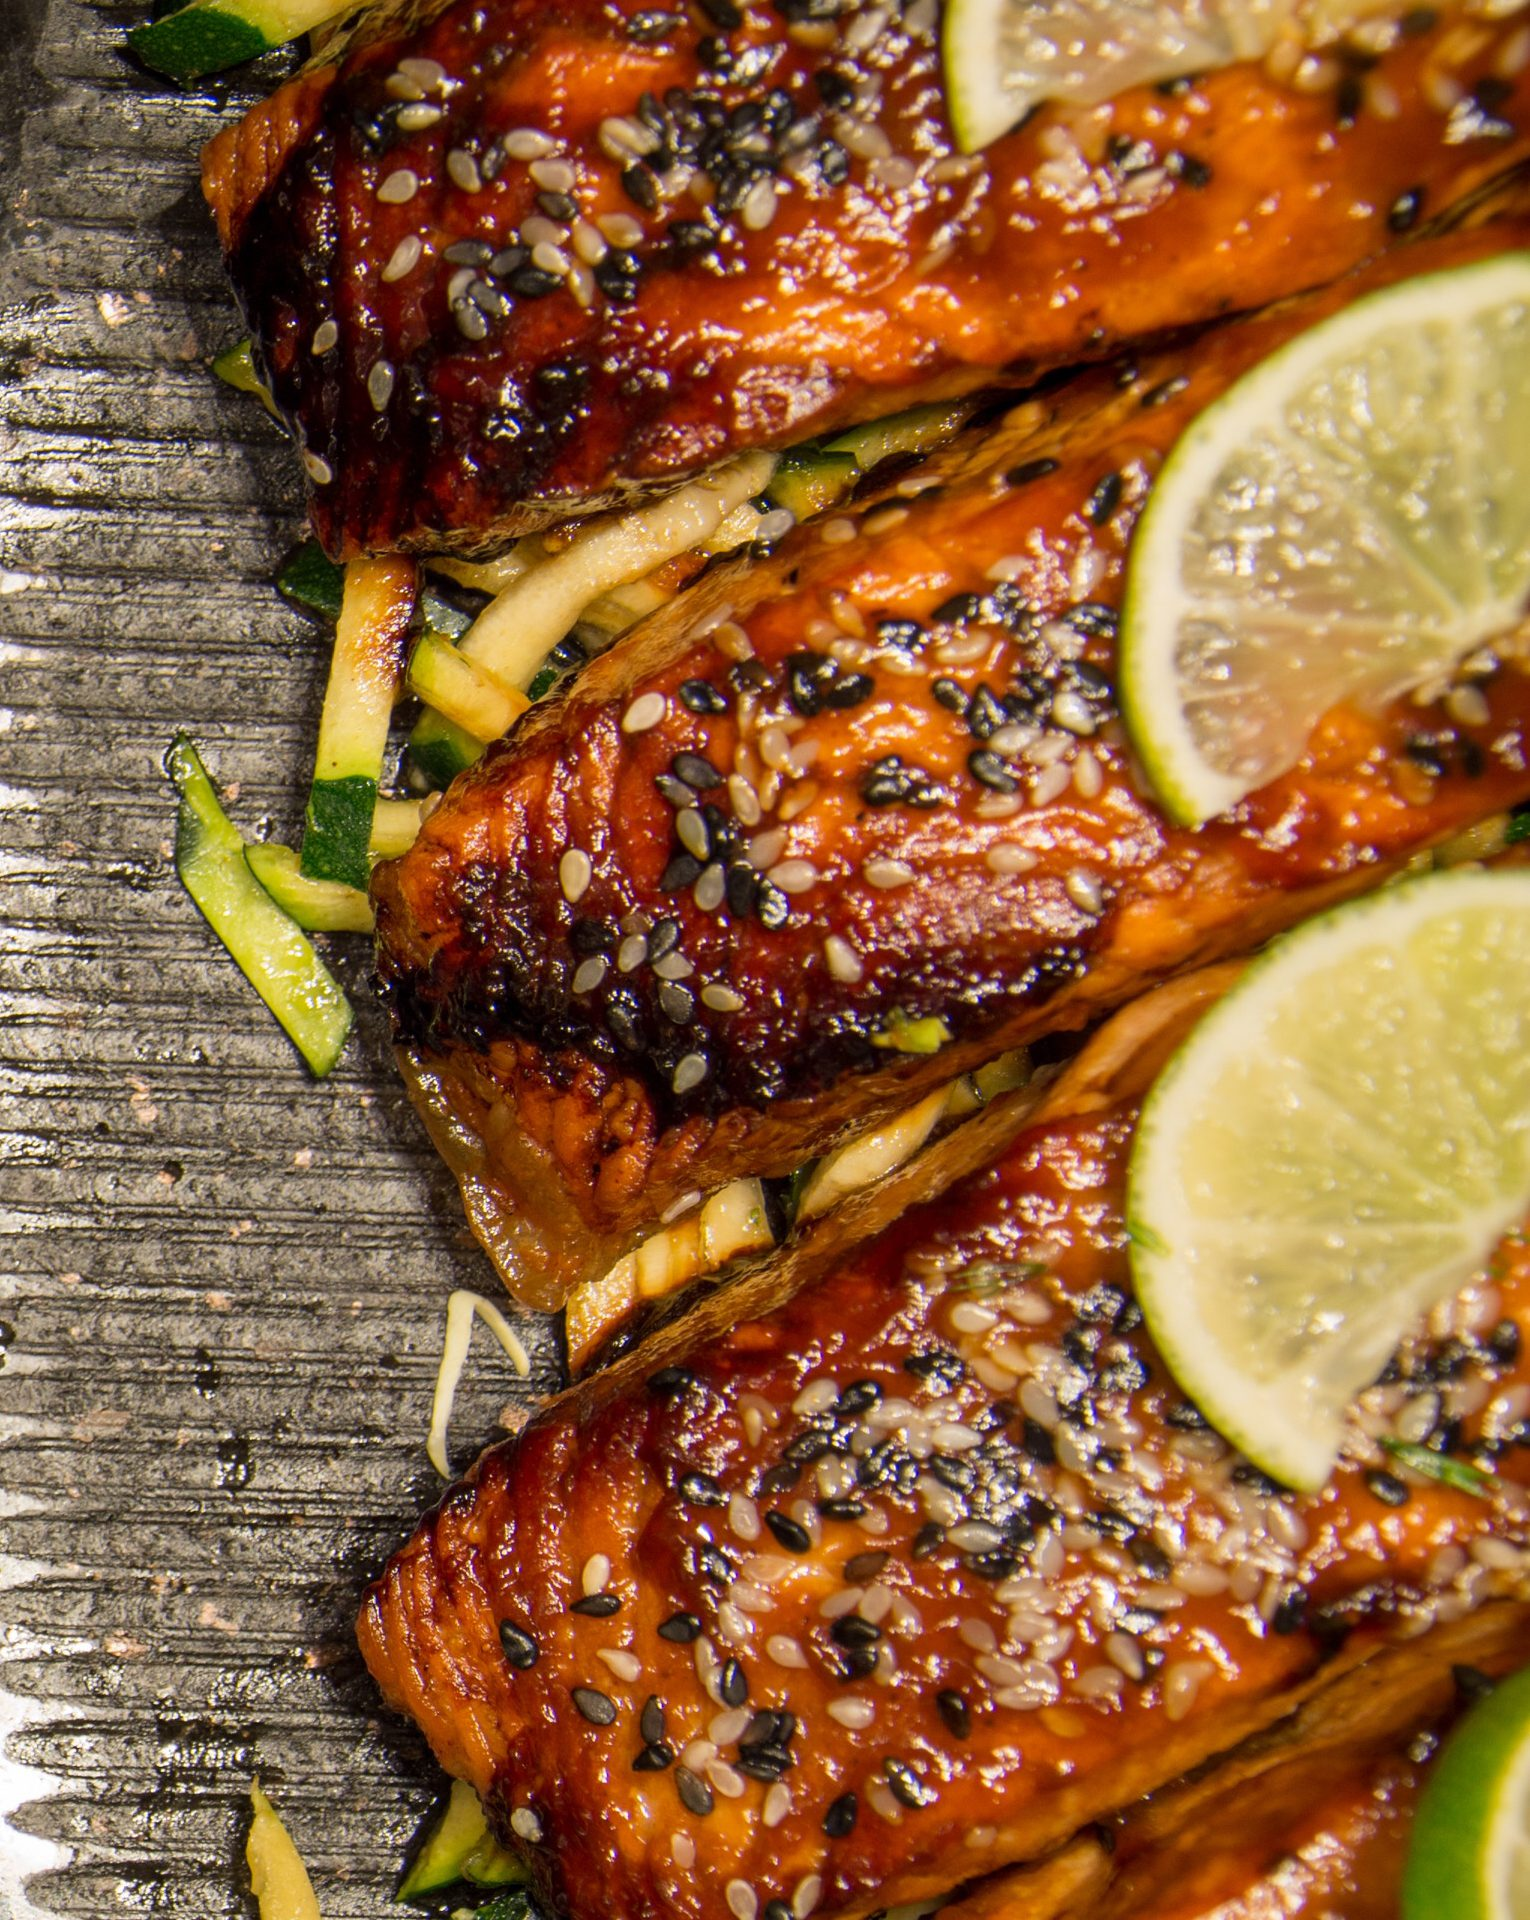 anti-inflammatory fats to heal your gut